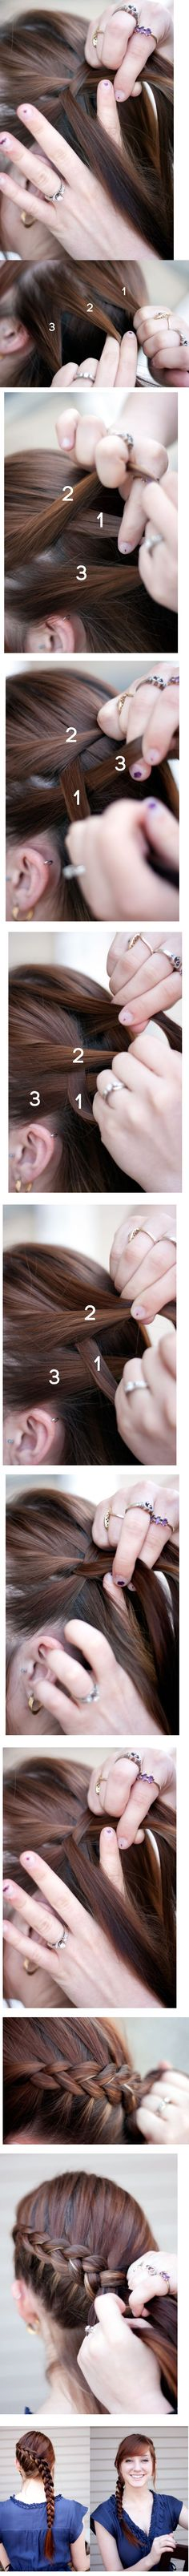 Step-by-Step: Hunger Games - Katniss Everdeen Hair Braid Katniss Everdeen hairstyle from the Hunger Katniss Everdeen Hair, Katniss Braid, Hair Day, Your Hair, Braided Hairstyles, Cool Hairstyles, Country Hairstyles, Woman Hairstyles, Classic Hairstyles